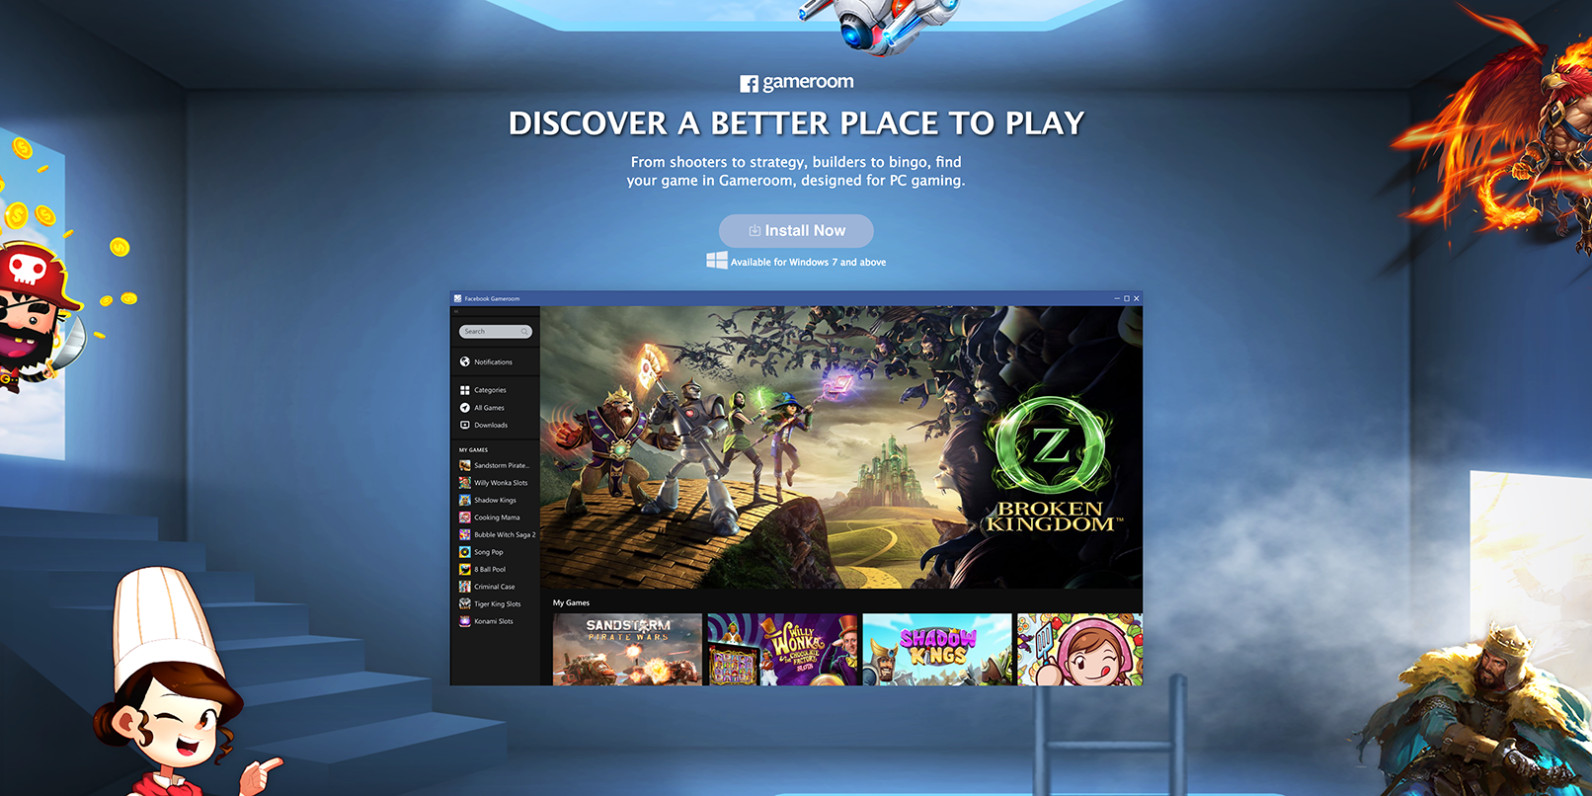 Best ideas about Facebook Game Room Review . Save or Pin Has Announced Steam Rival Gameroom Now.